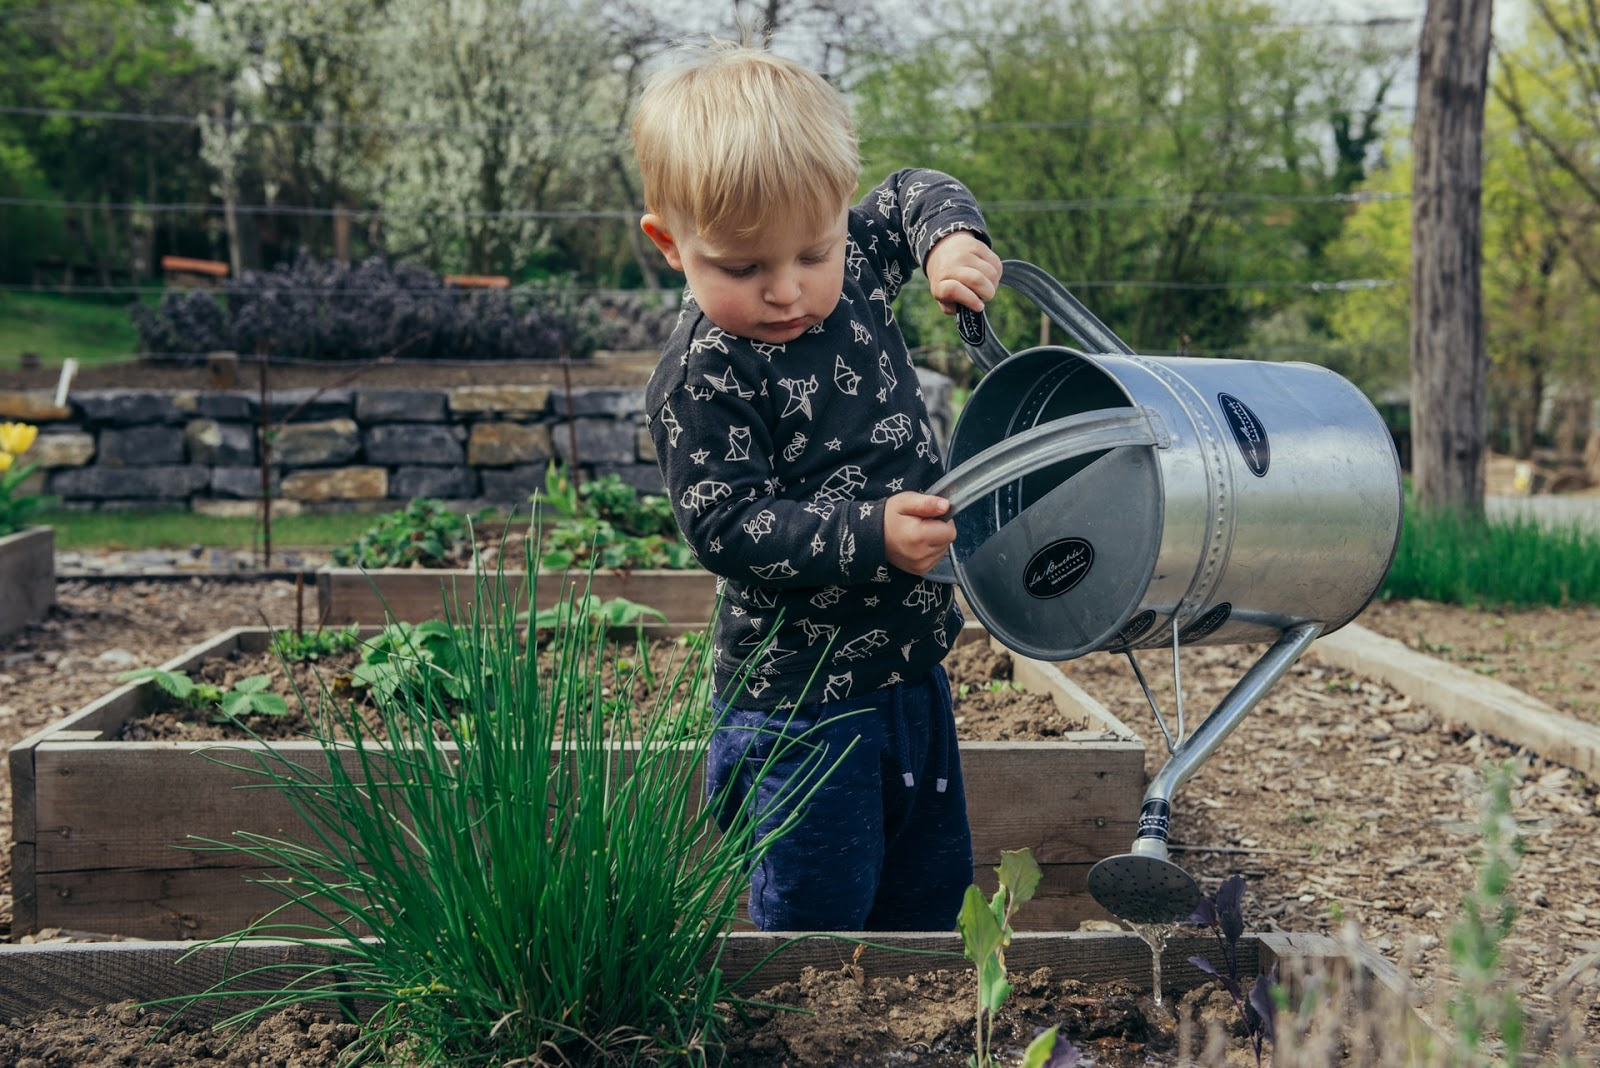 toddler pouring out a watering can on plants